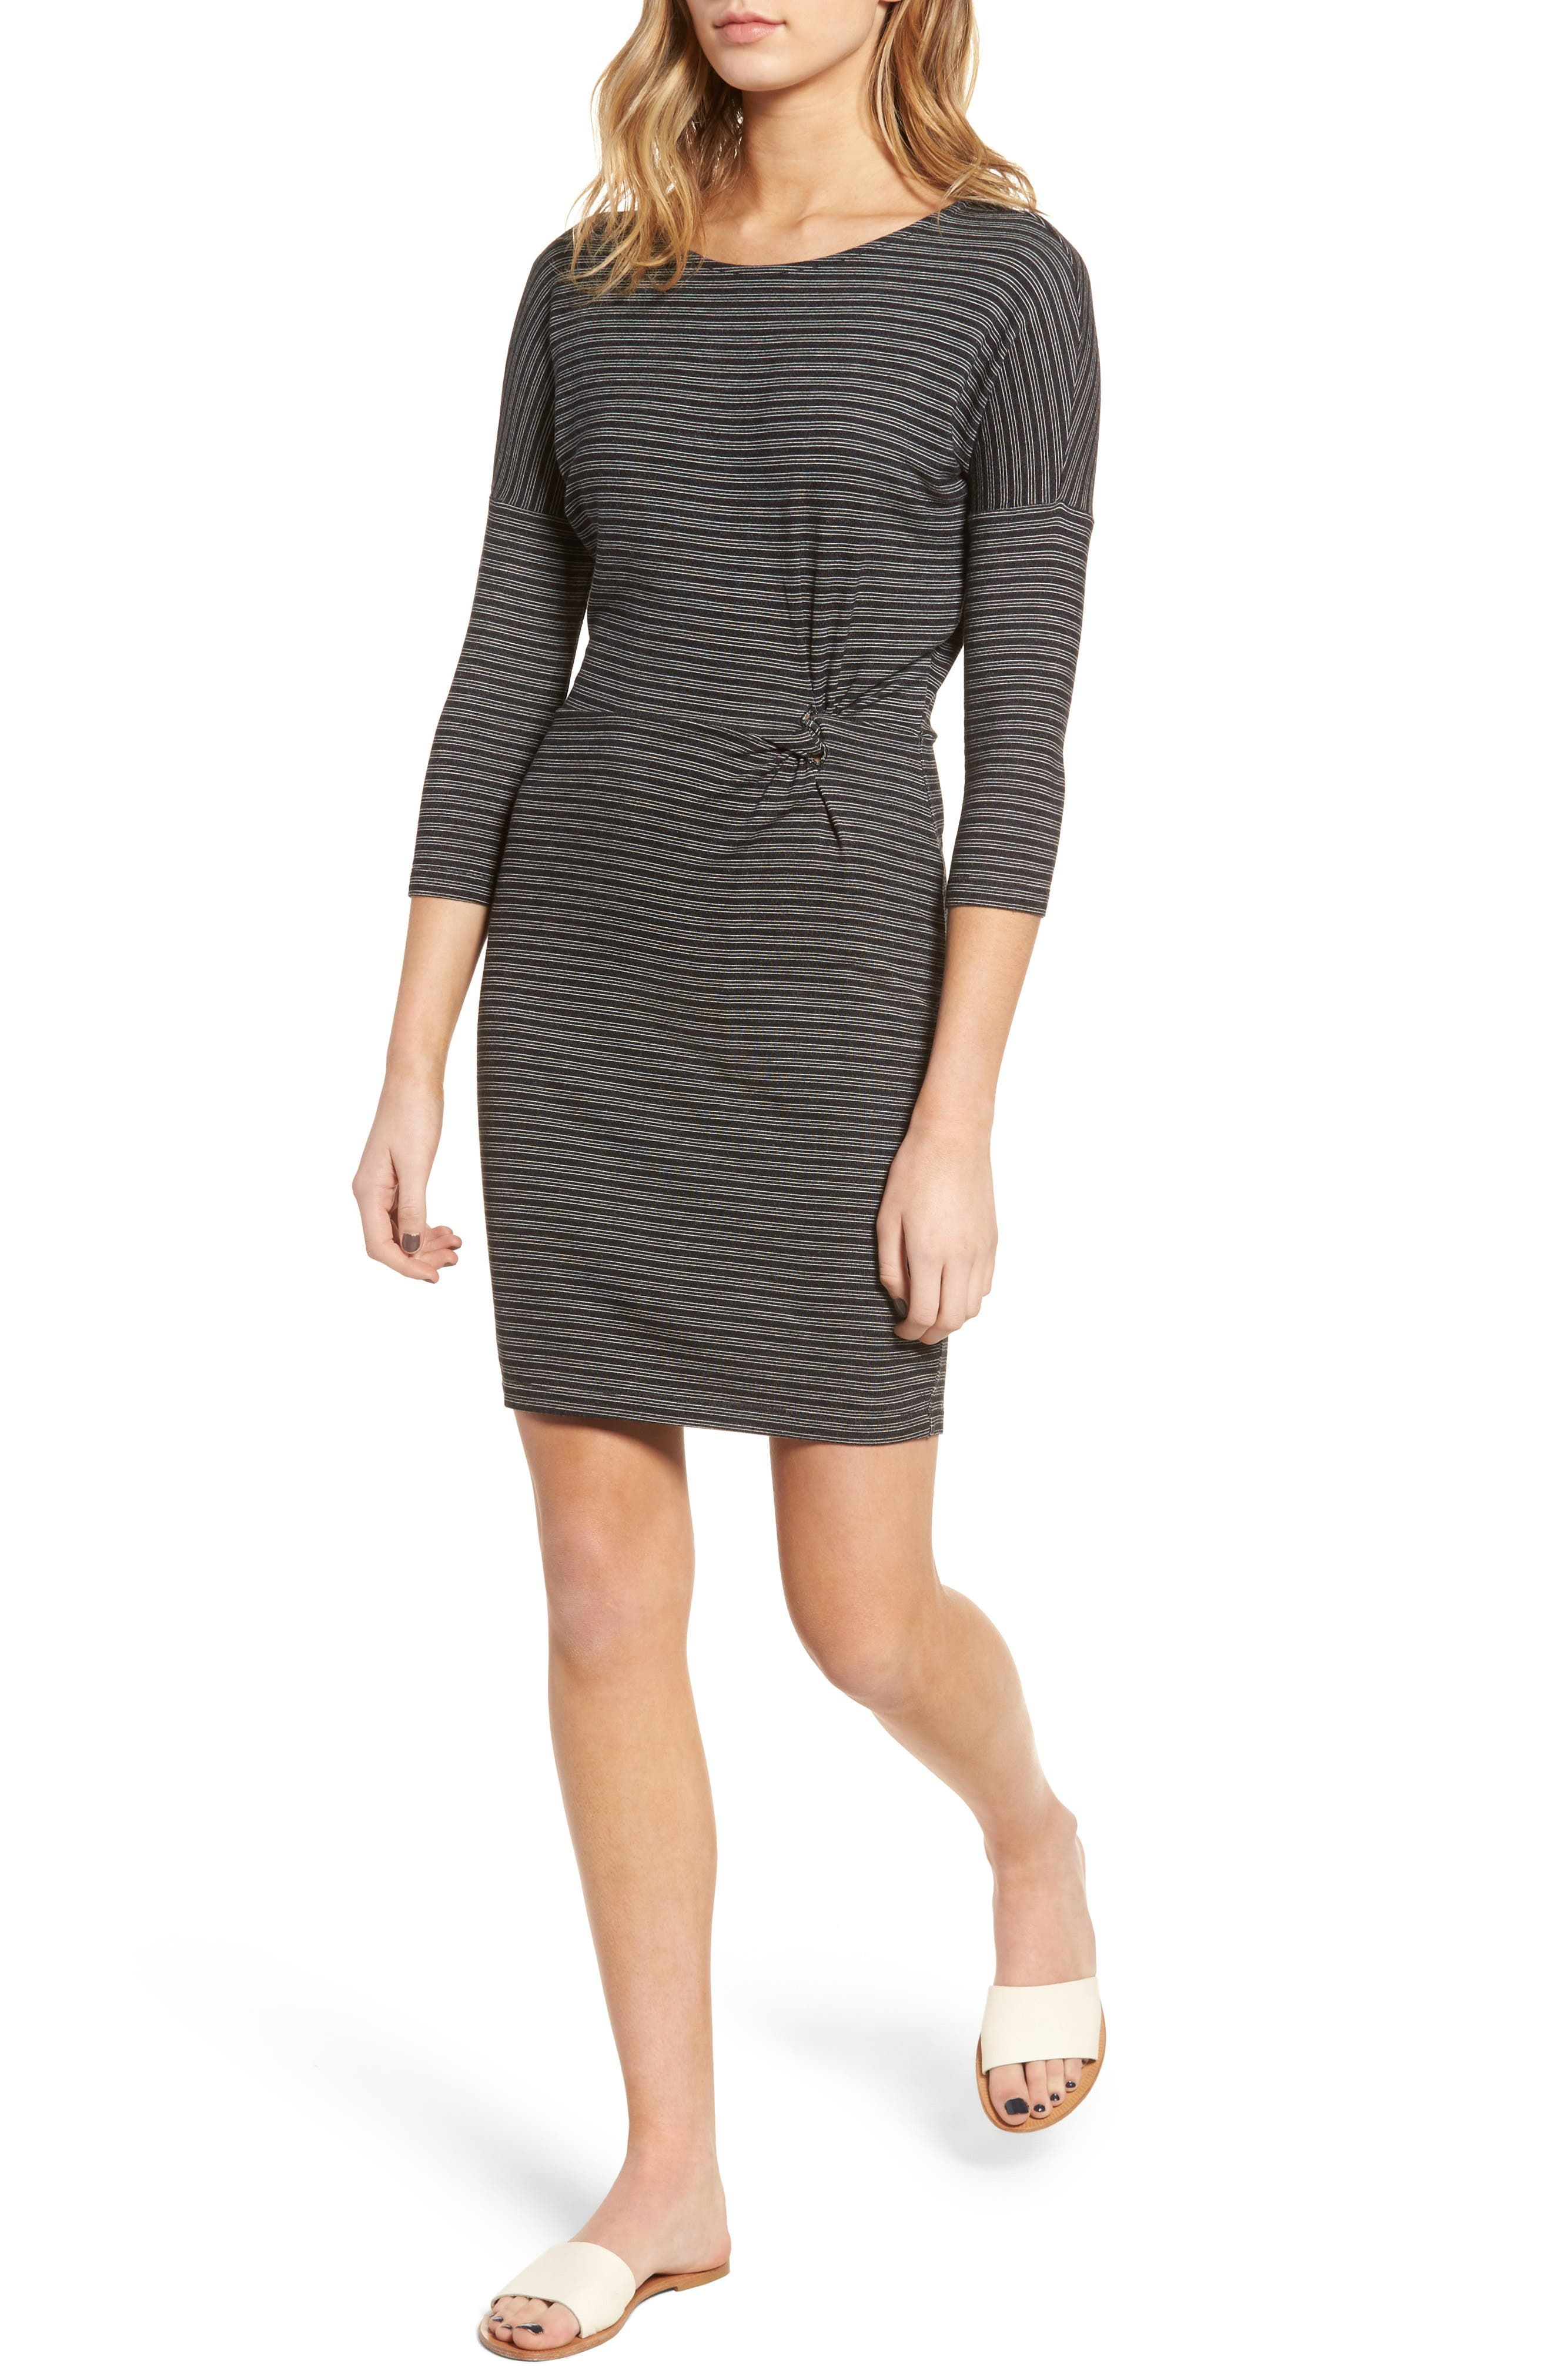 cupcakes and cashmere Rylin Body-Con Dress